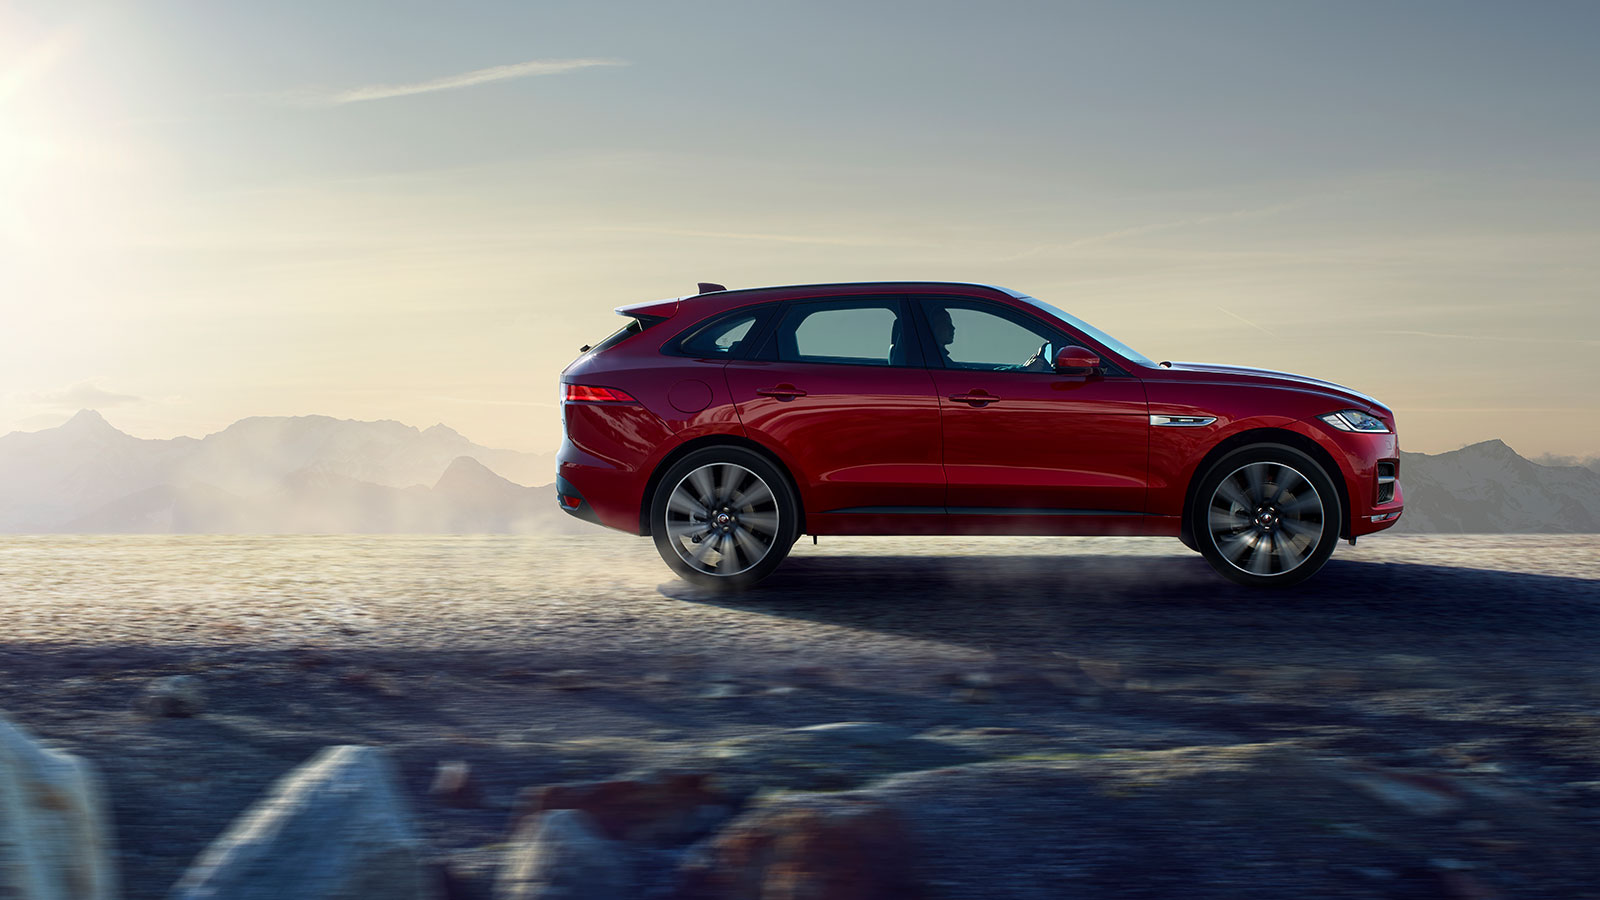 Jaguar F-PACE Red Exterior Off Road.